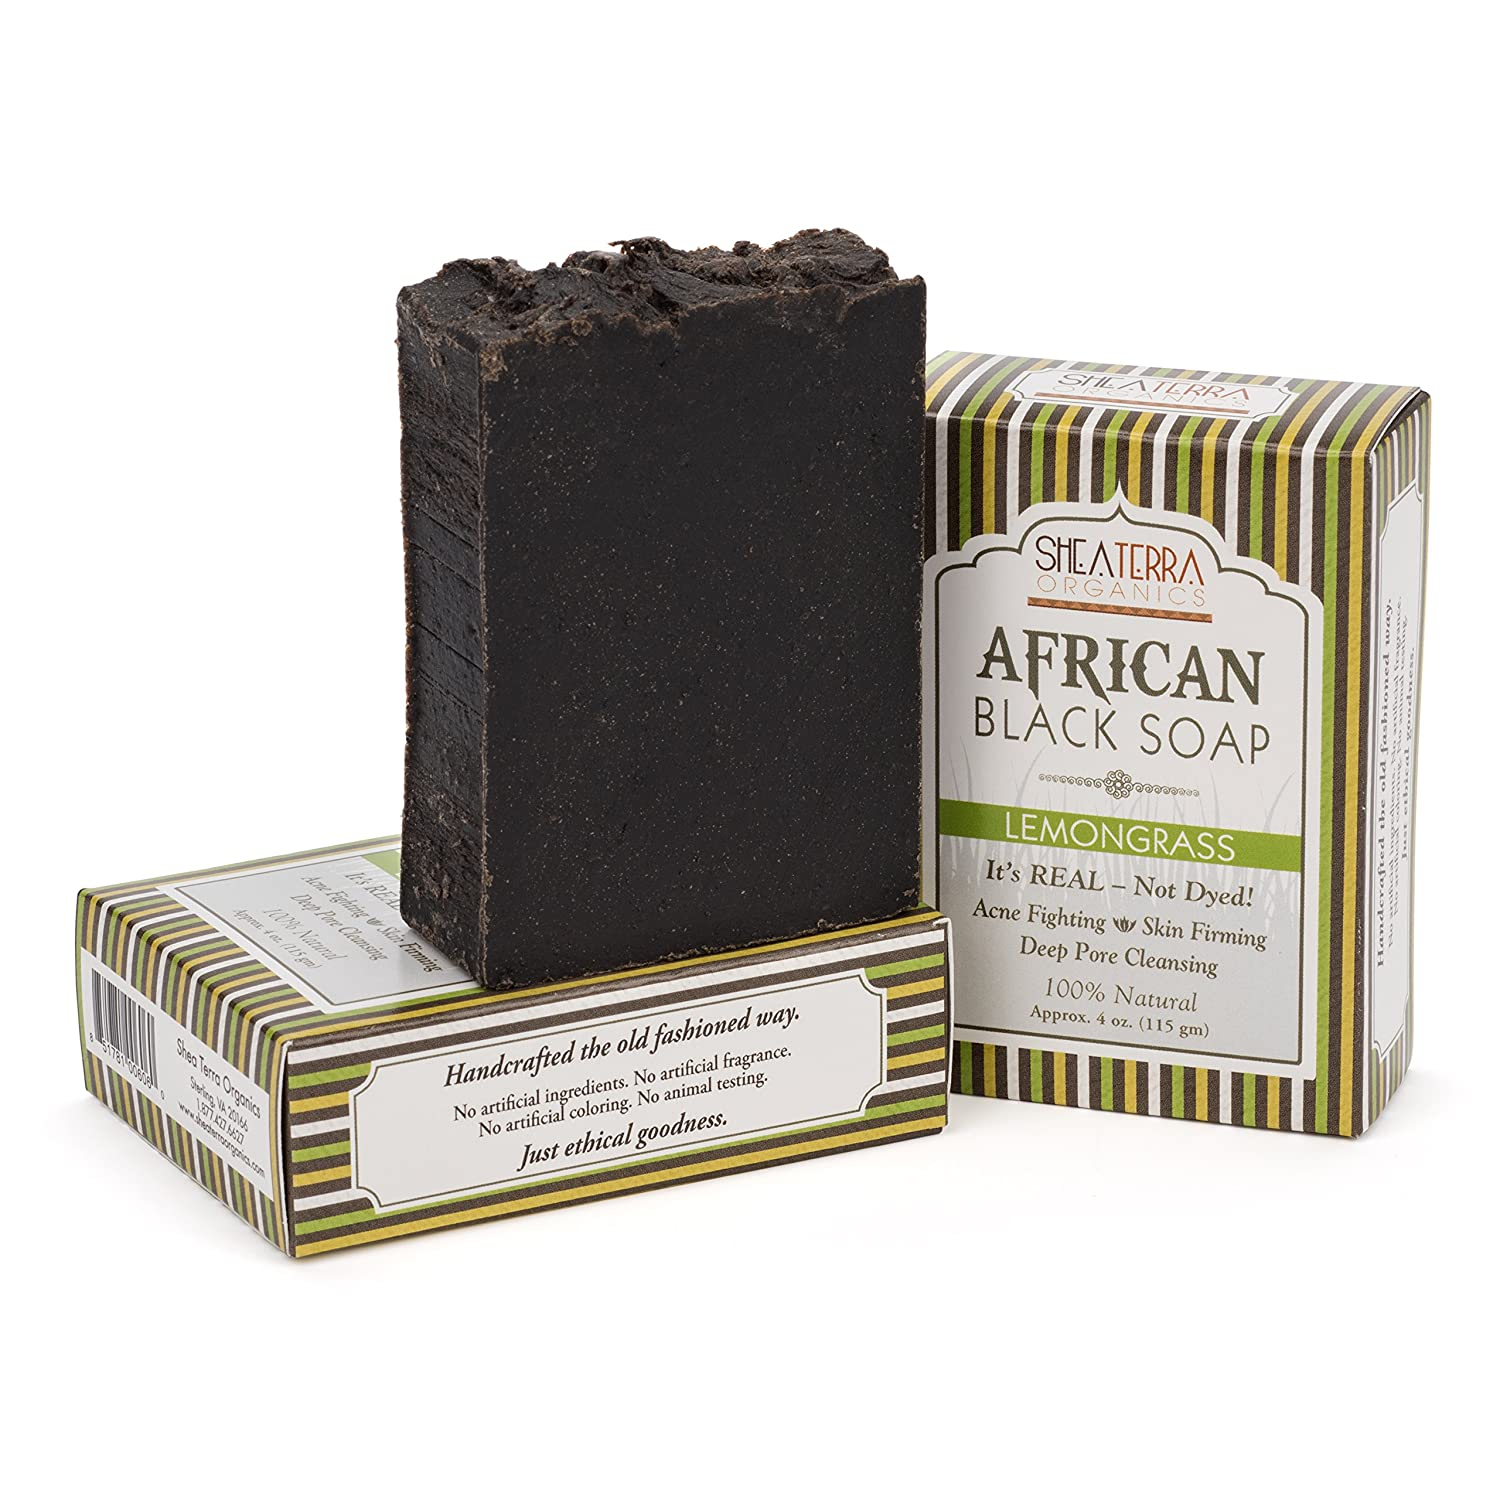 Shea Terra Organics African Black Soap Bar with Lemongrass Oil| Natural Skin Care for Acne, Eczema, Dry Skin, Psoriasis, Wrinkles, and More - Home Spa Treatment Full Body Wash - 4 oz